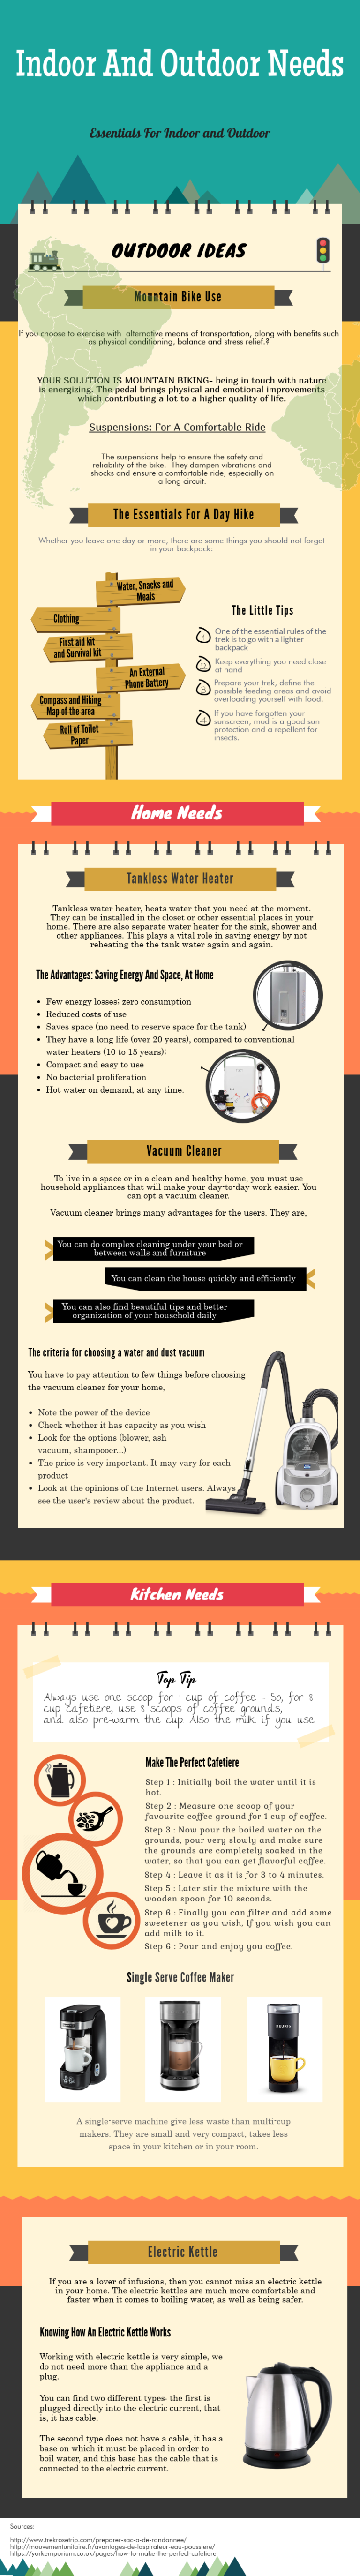 Advantages Of Using The Vacuum Cleaner For House Cleaning